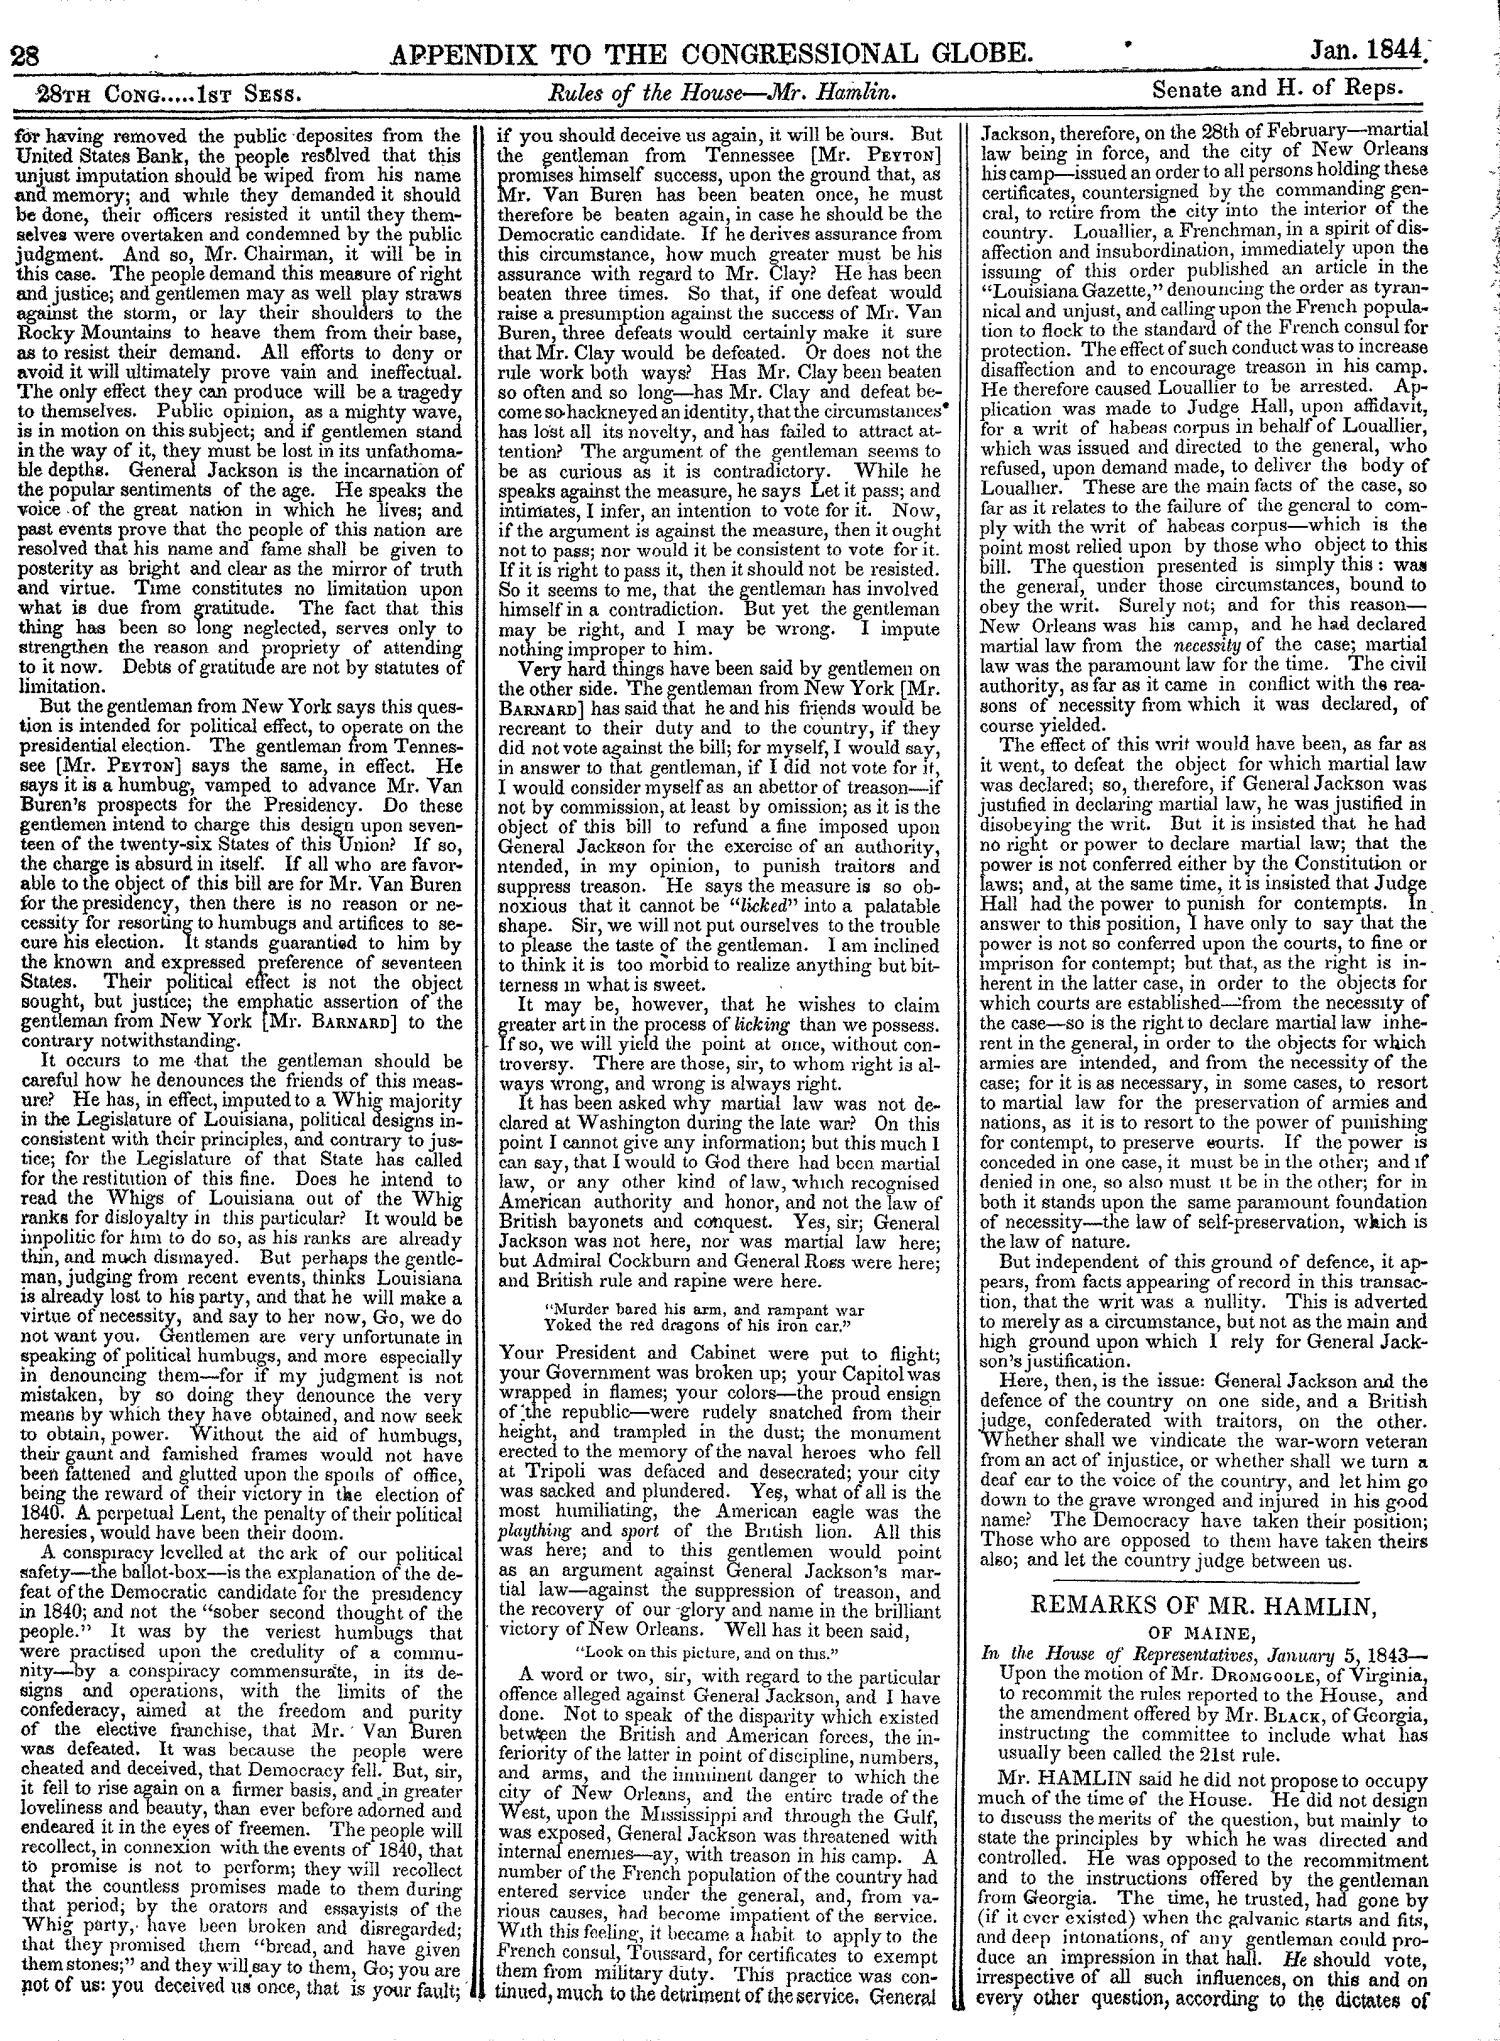 The Congressional Globe, Volume 13, Part 2: Twenty-Eighth Congress, First Session                                                                                                      28